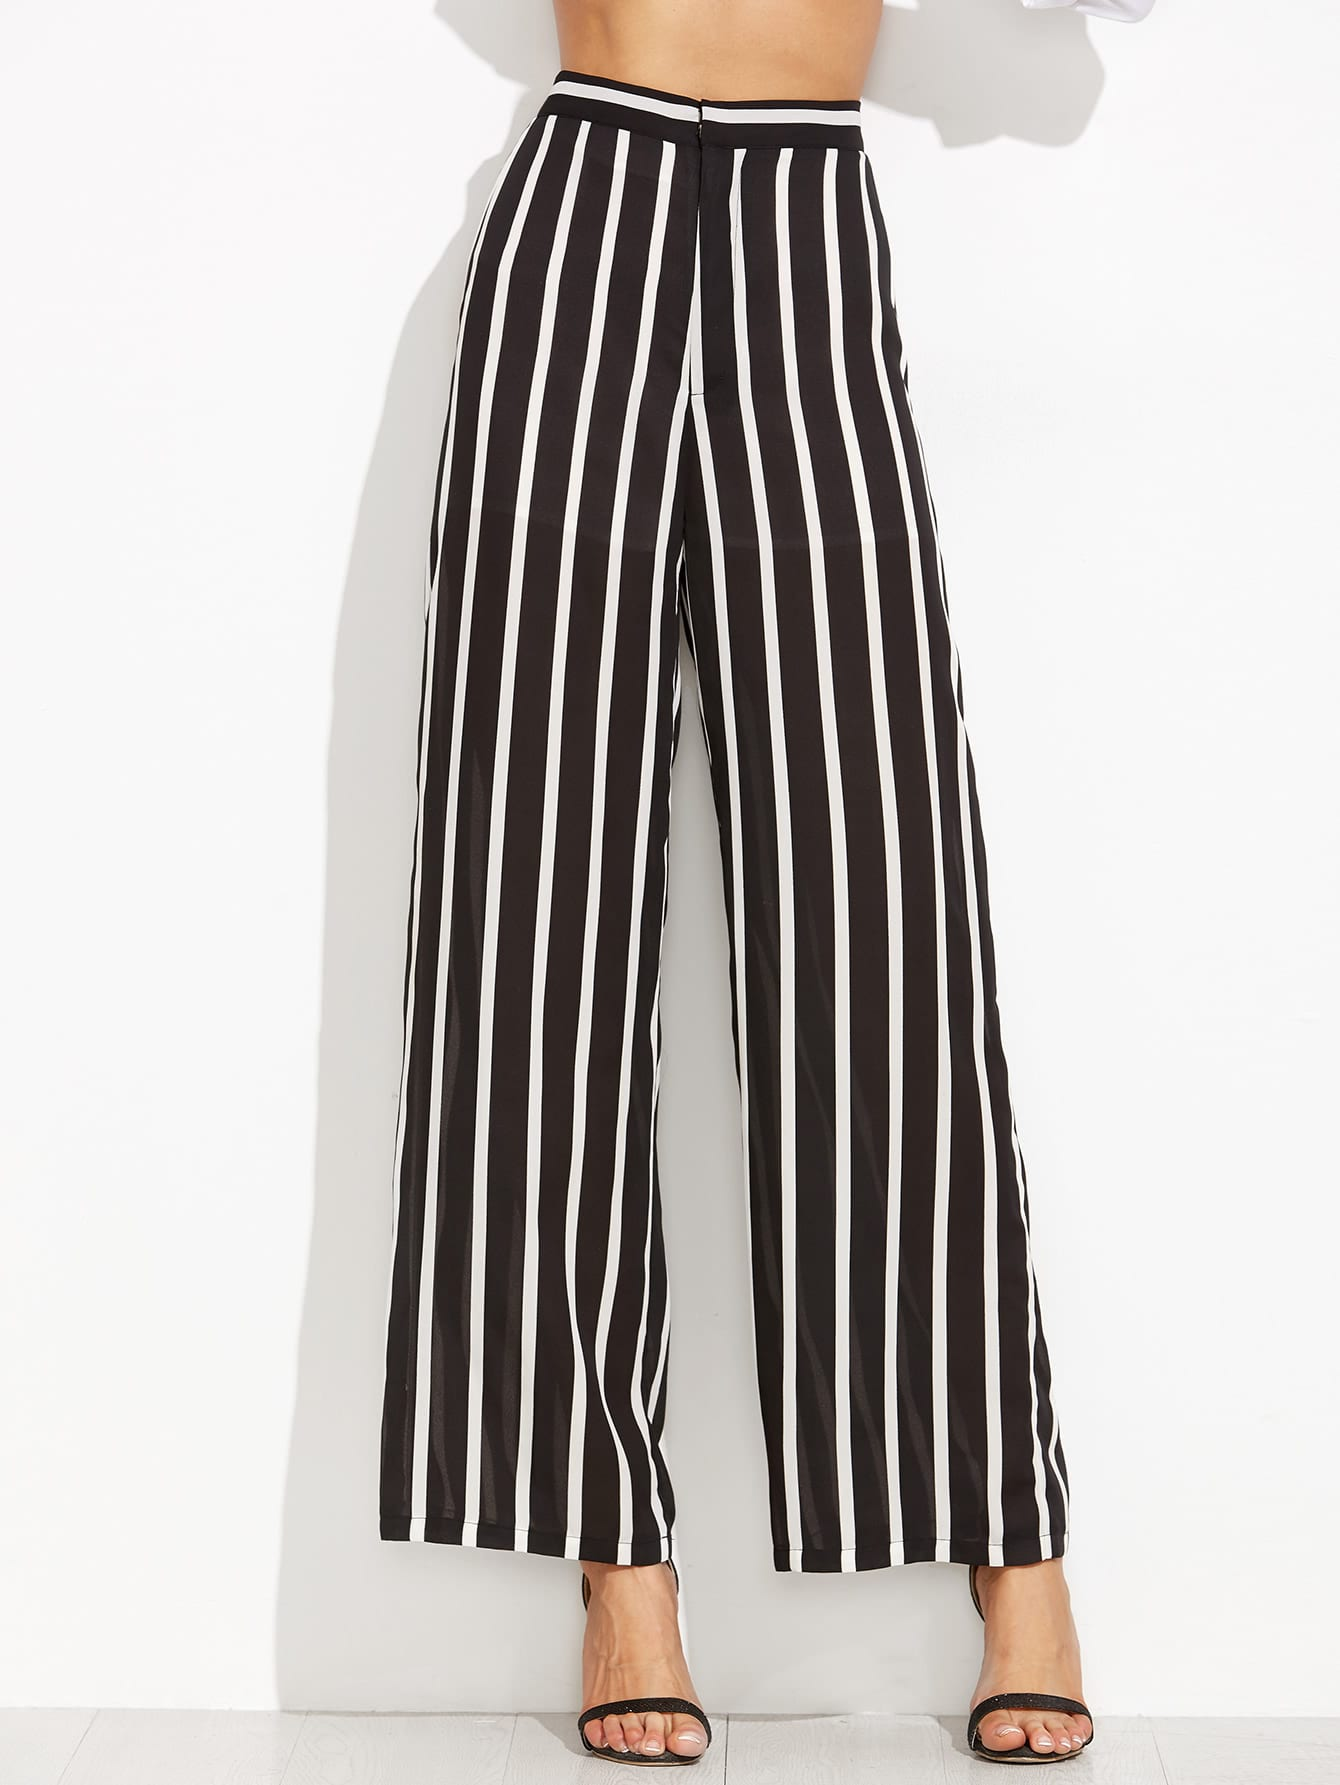 Vertical Striped Wide Leg Pants vertical striped pants